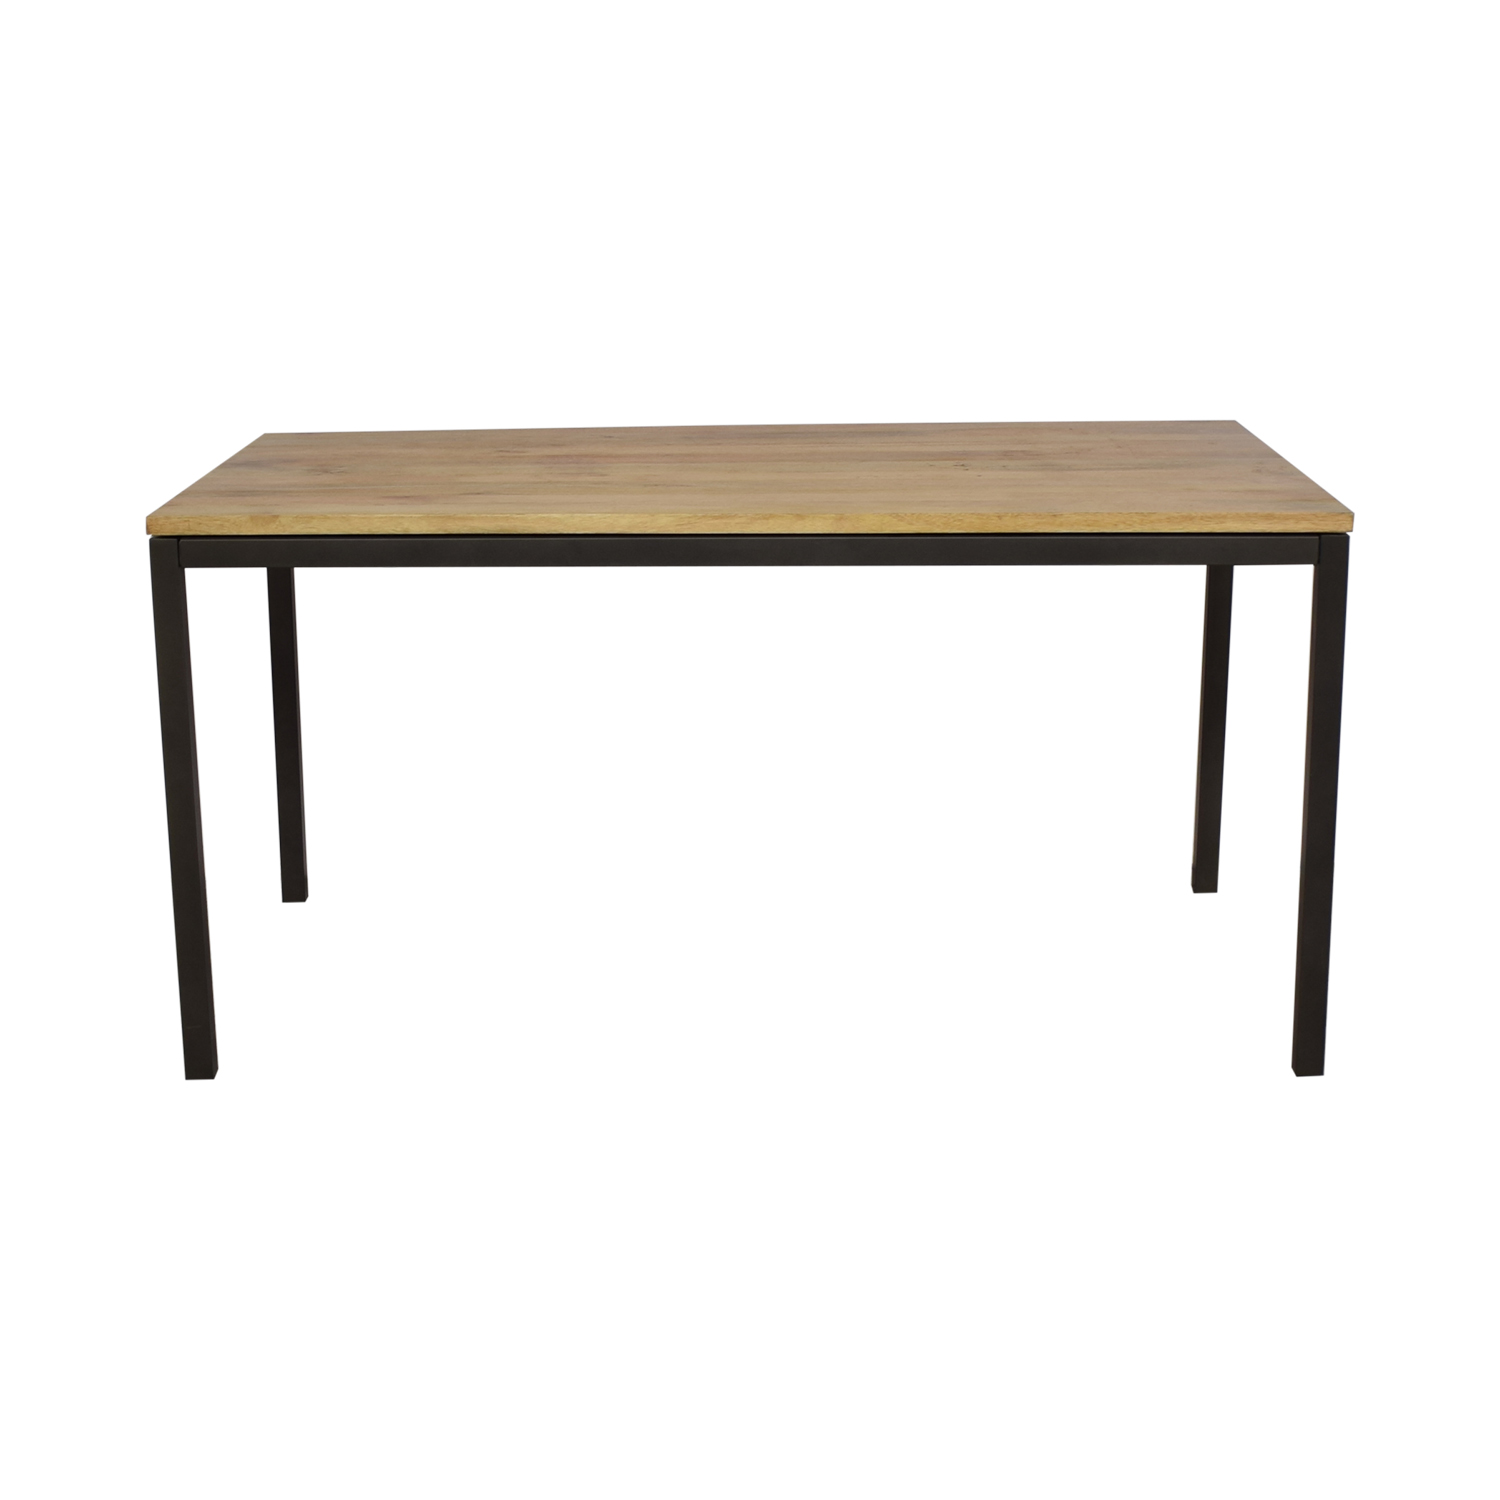 buy West Elm West Elm Box Frame Dining Table online